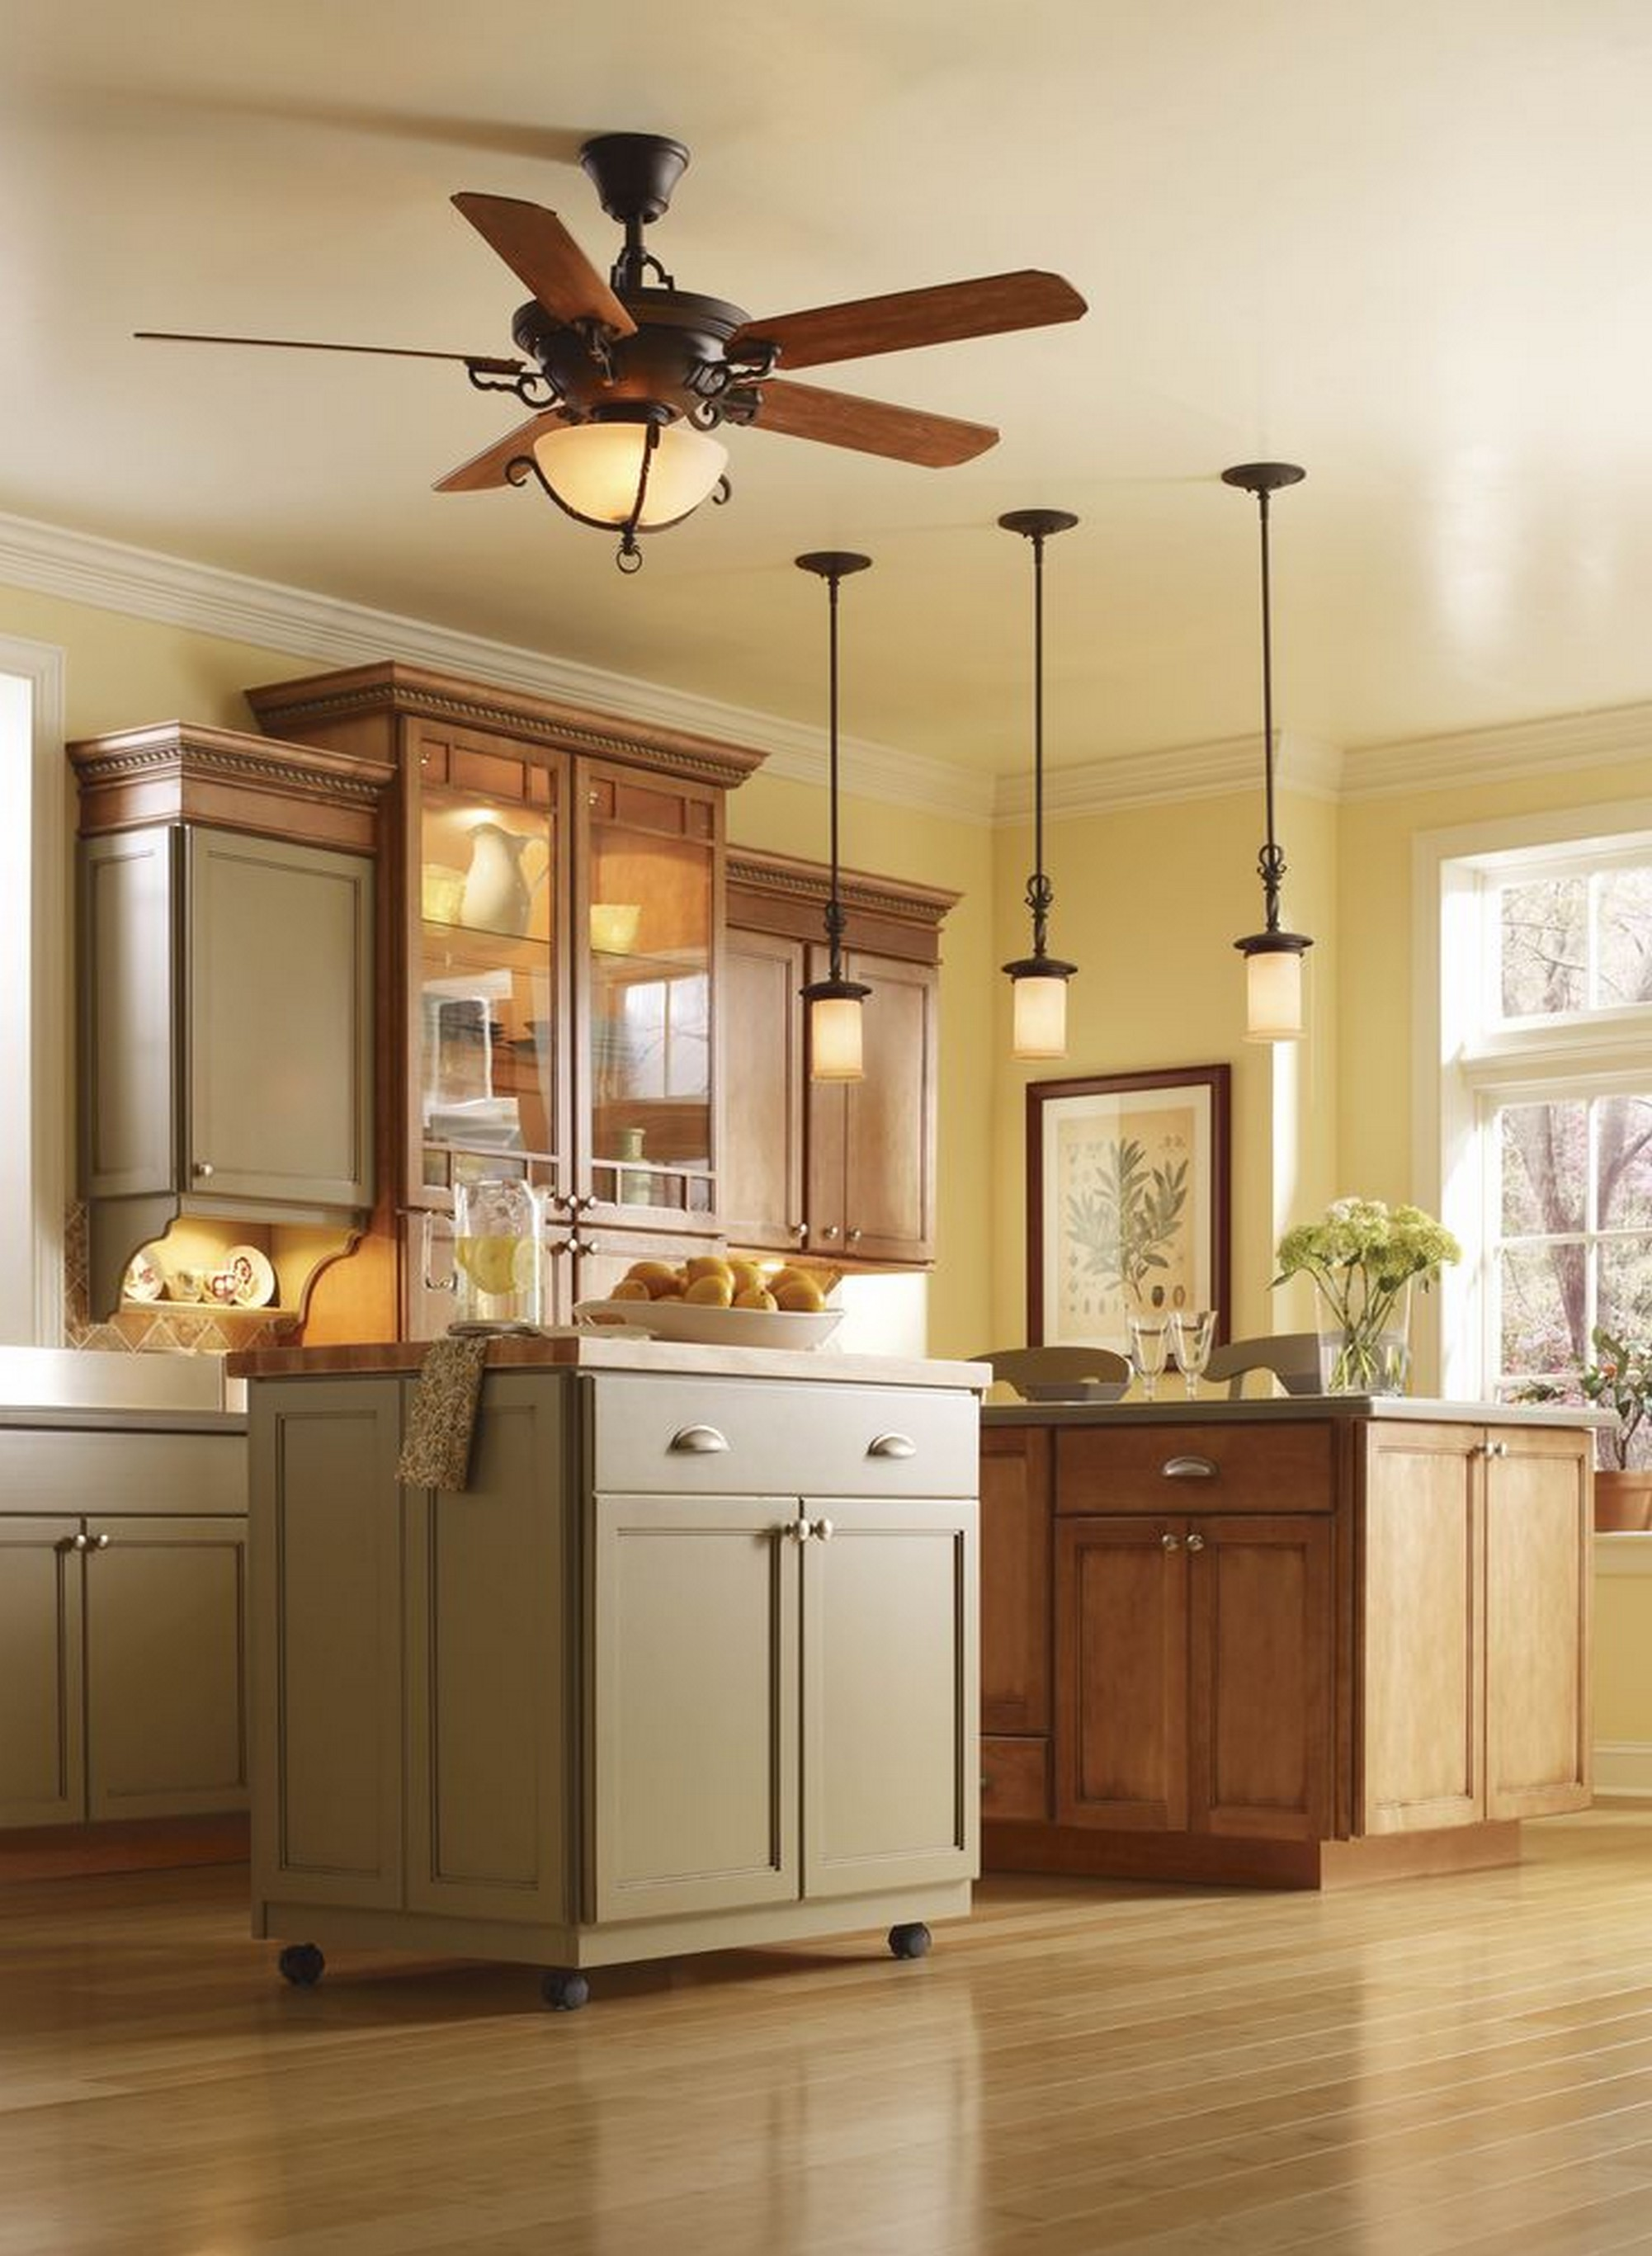 10 Tips To Help You Get the Right Ceiling fan for kitchen ...